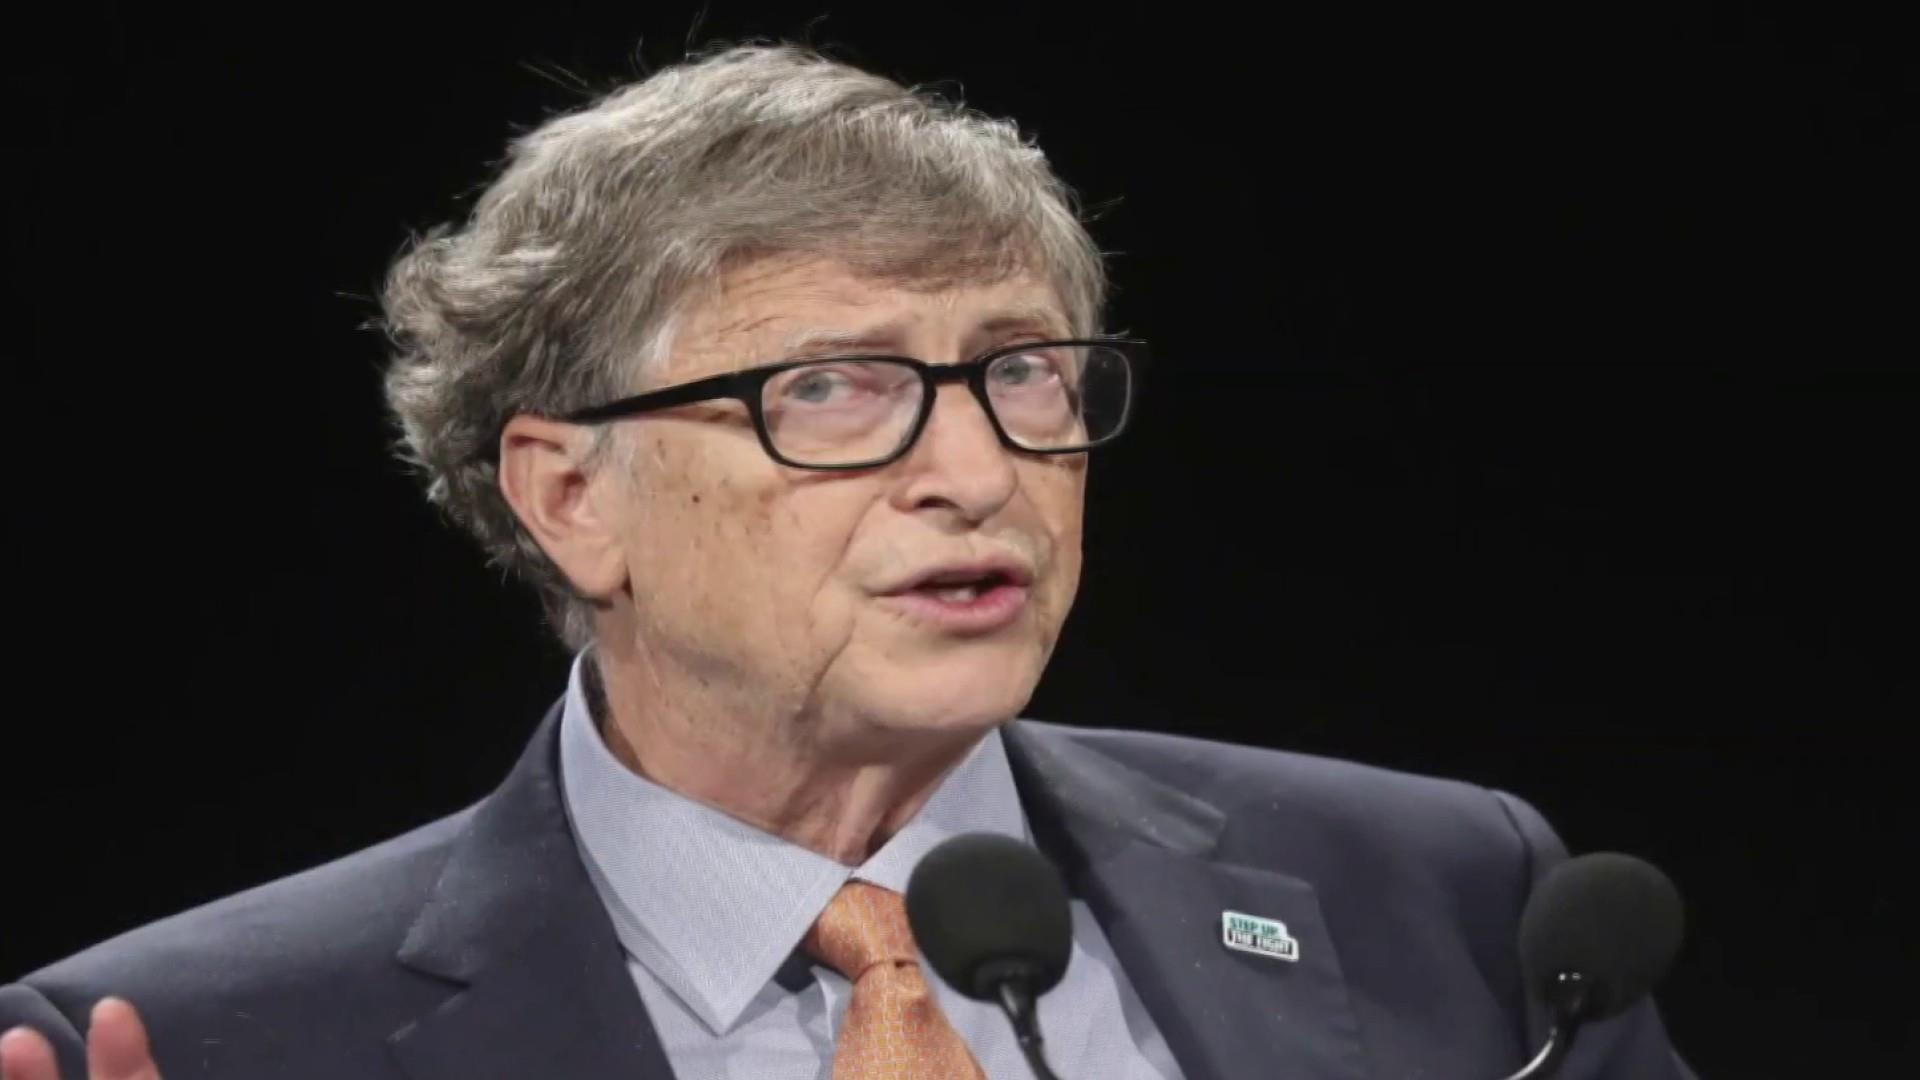 NYT: Bill Gates repeatedly met with Jeffrey Epstein